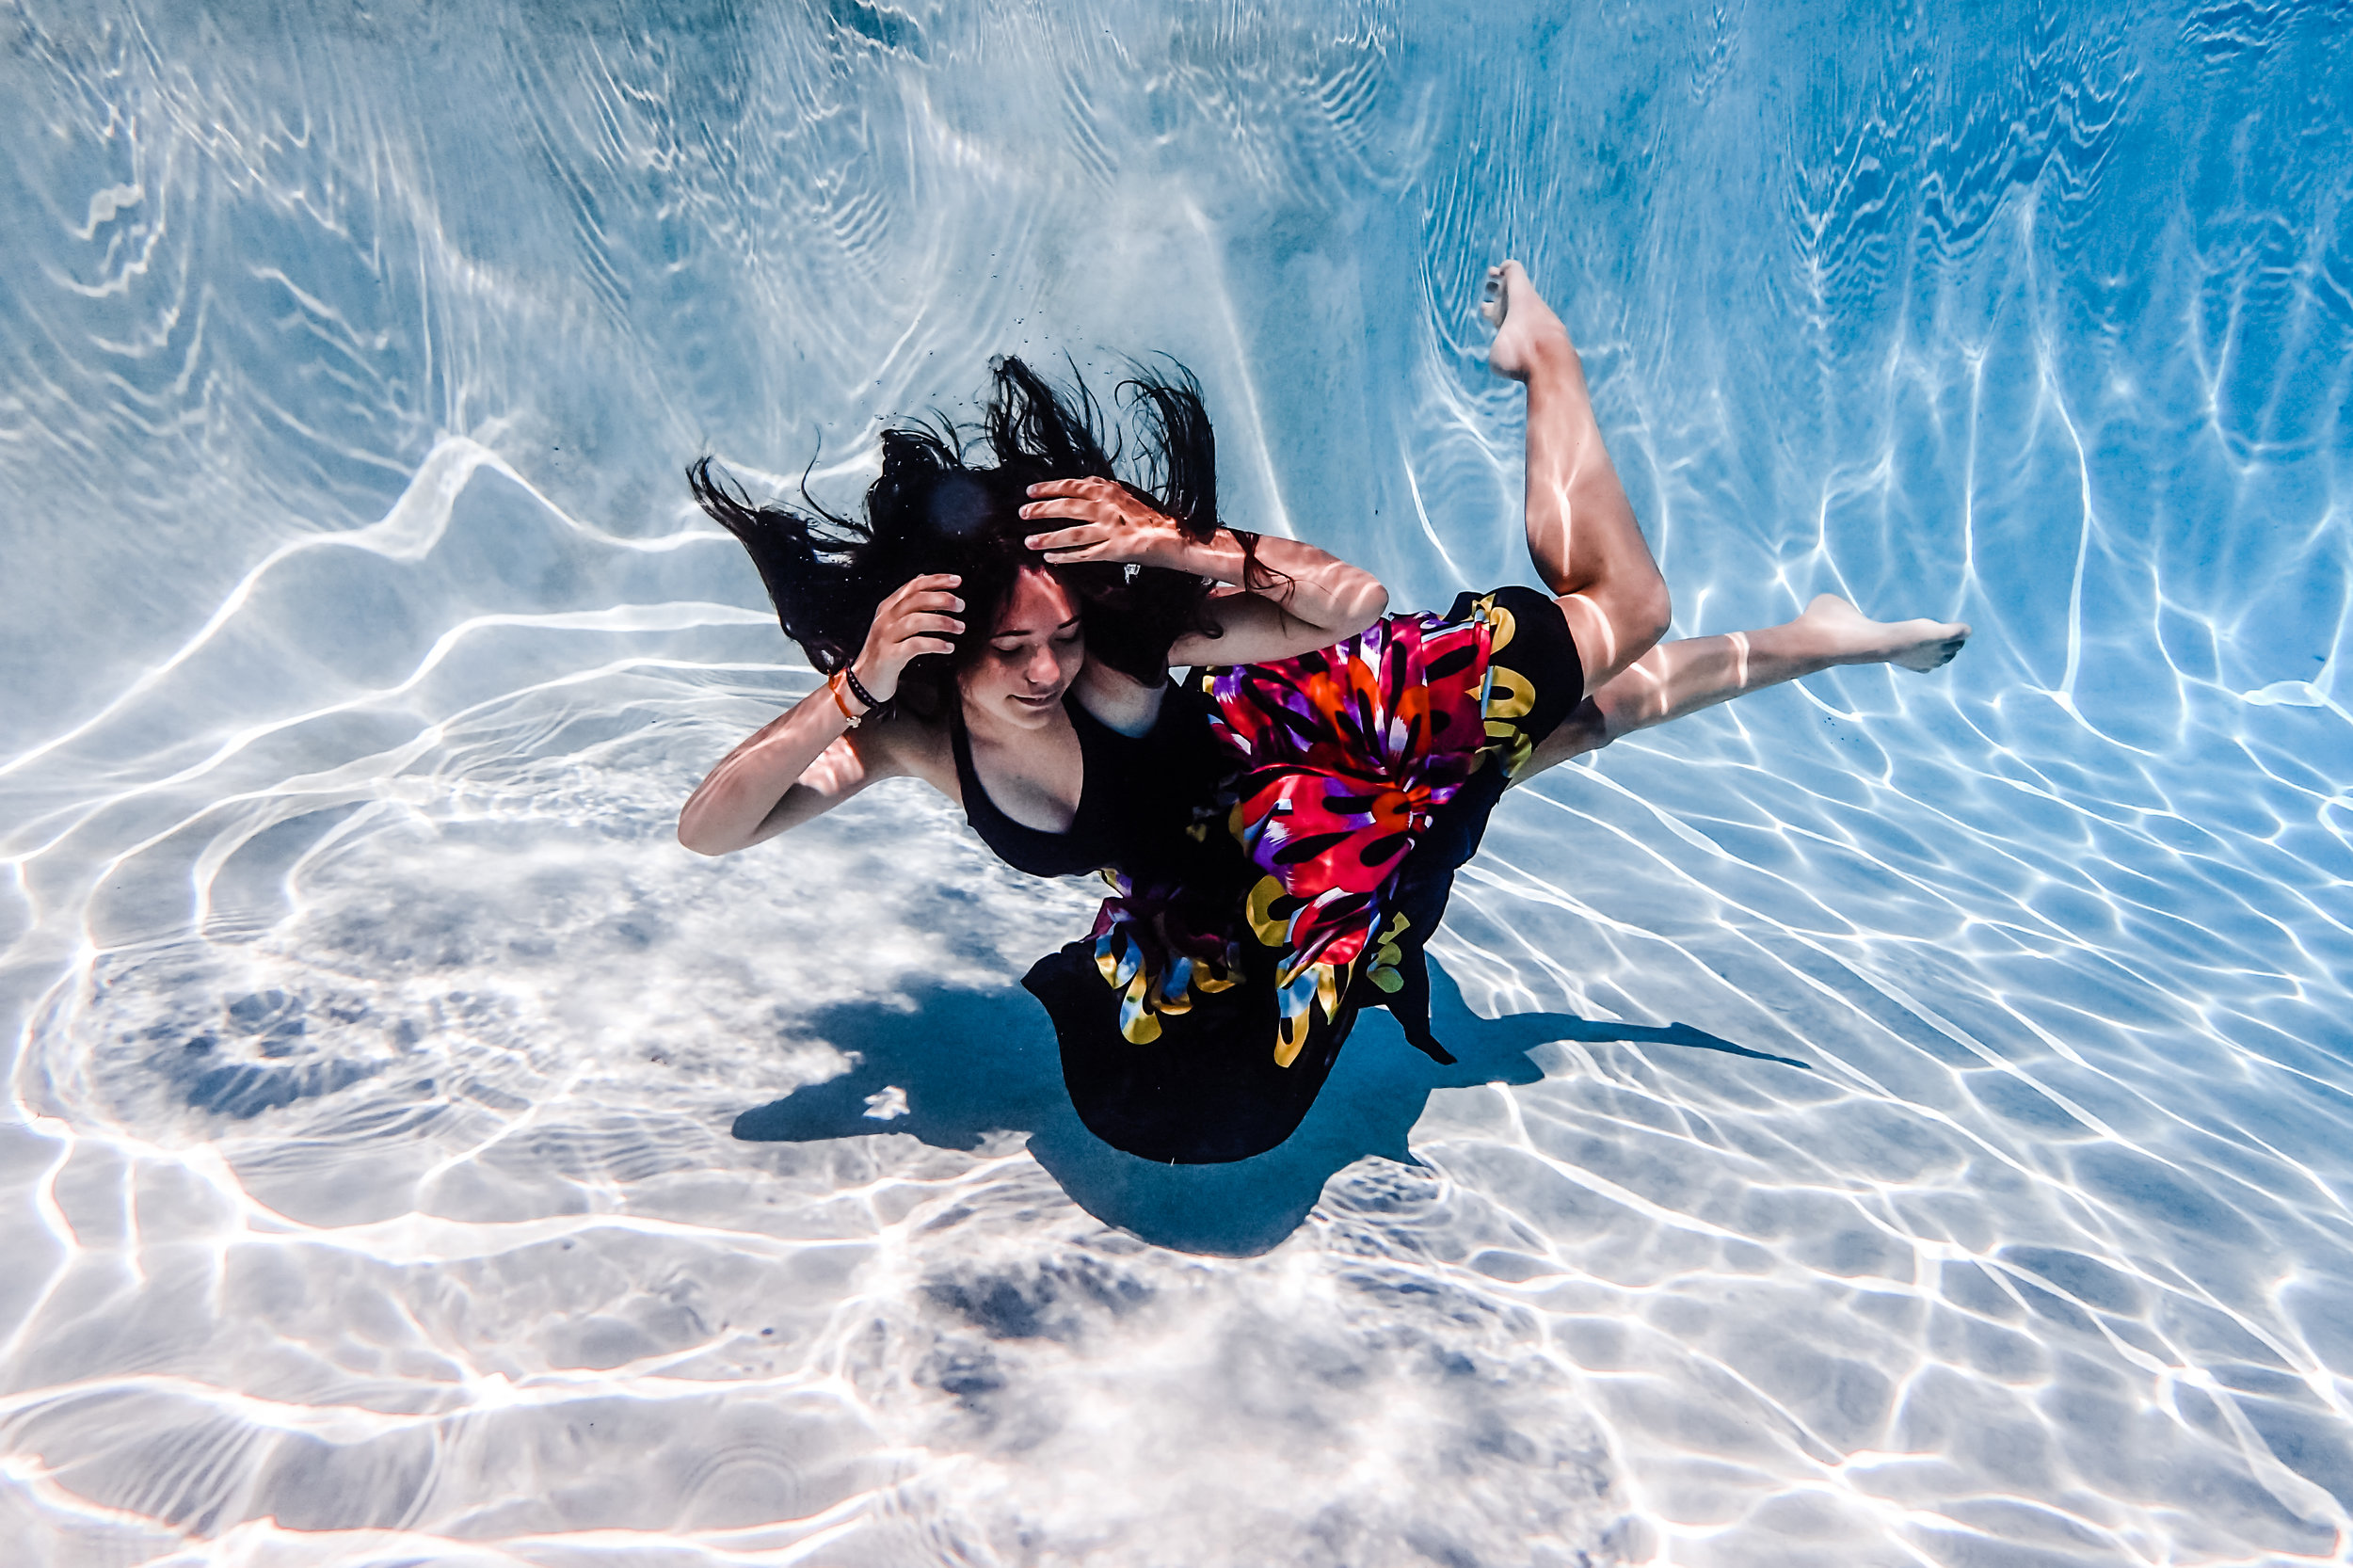 underwater | Anika Vodicka and Lenkaland Photography